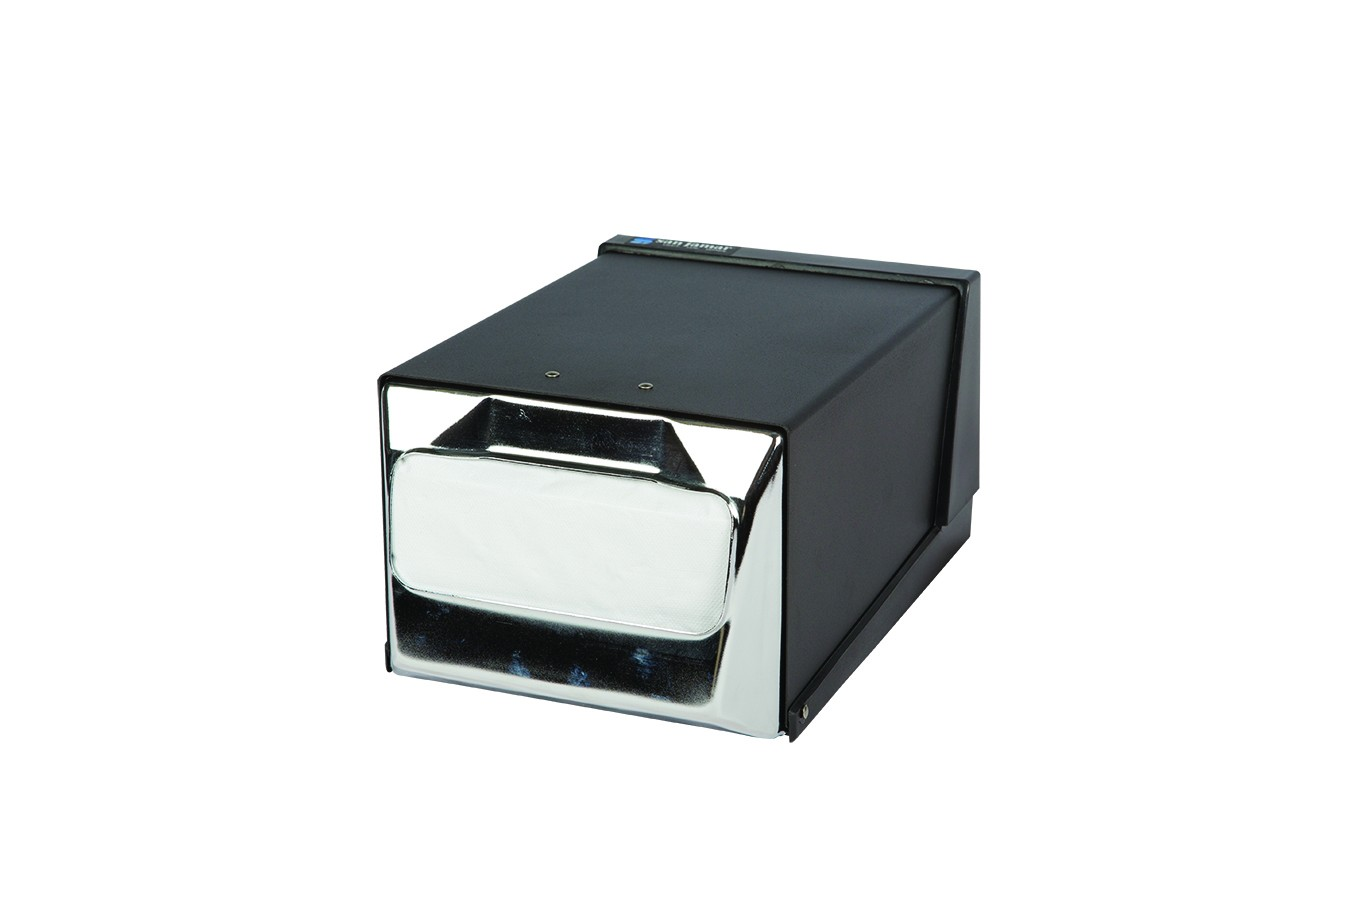 San Jamar H3001BKC Chrome And Black Countertop 300 Fullfold Napkin Dispenser